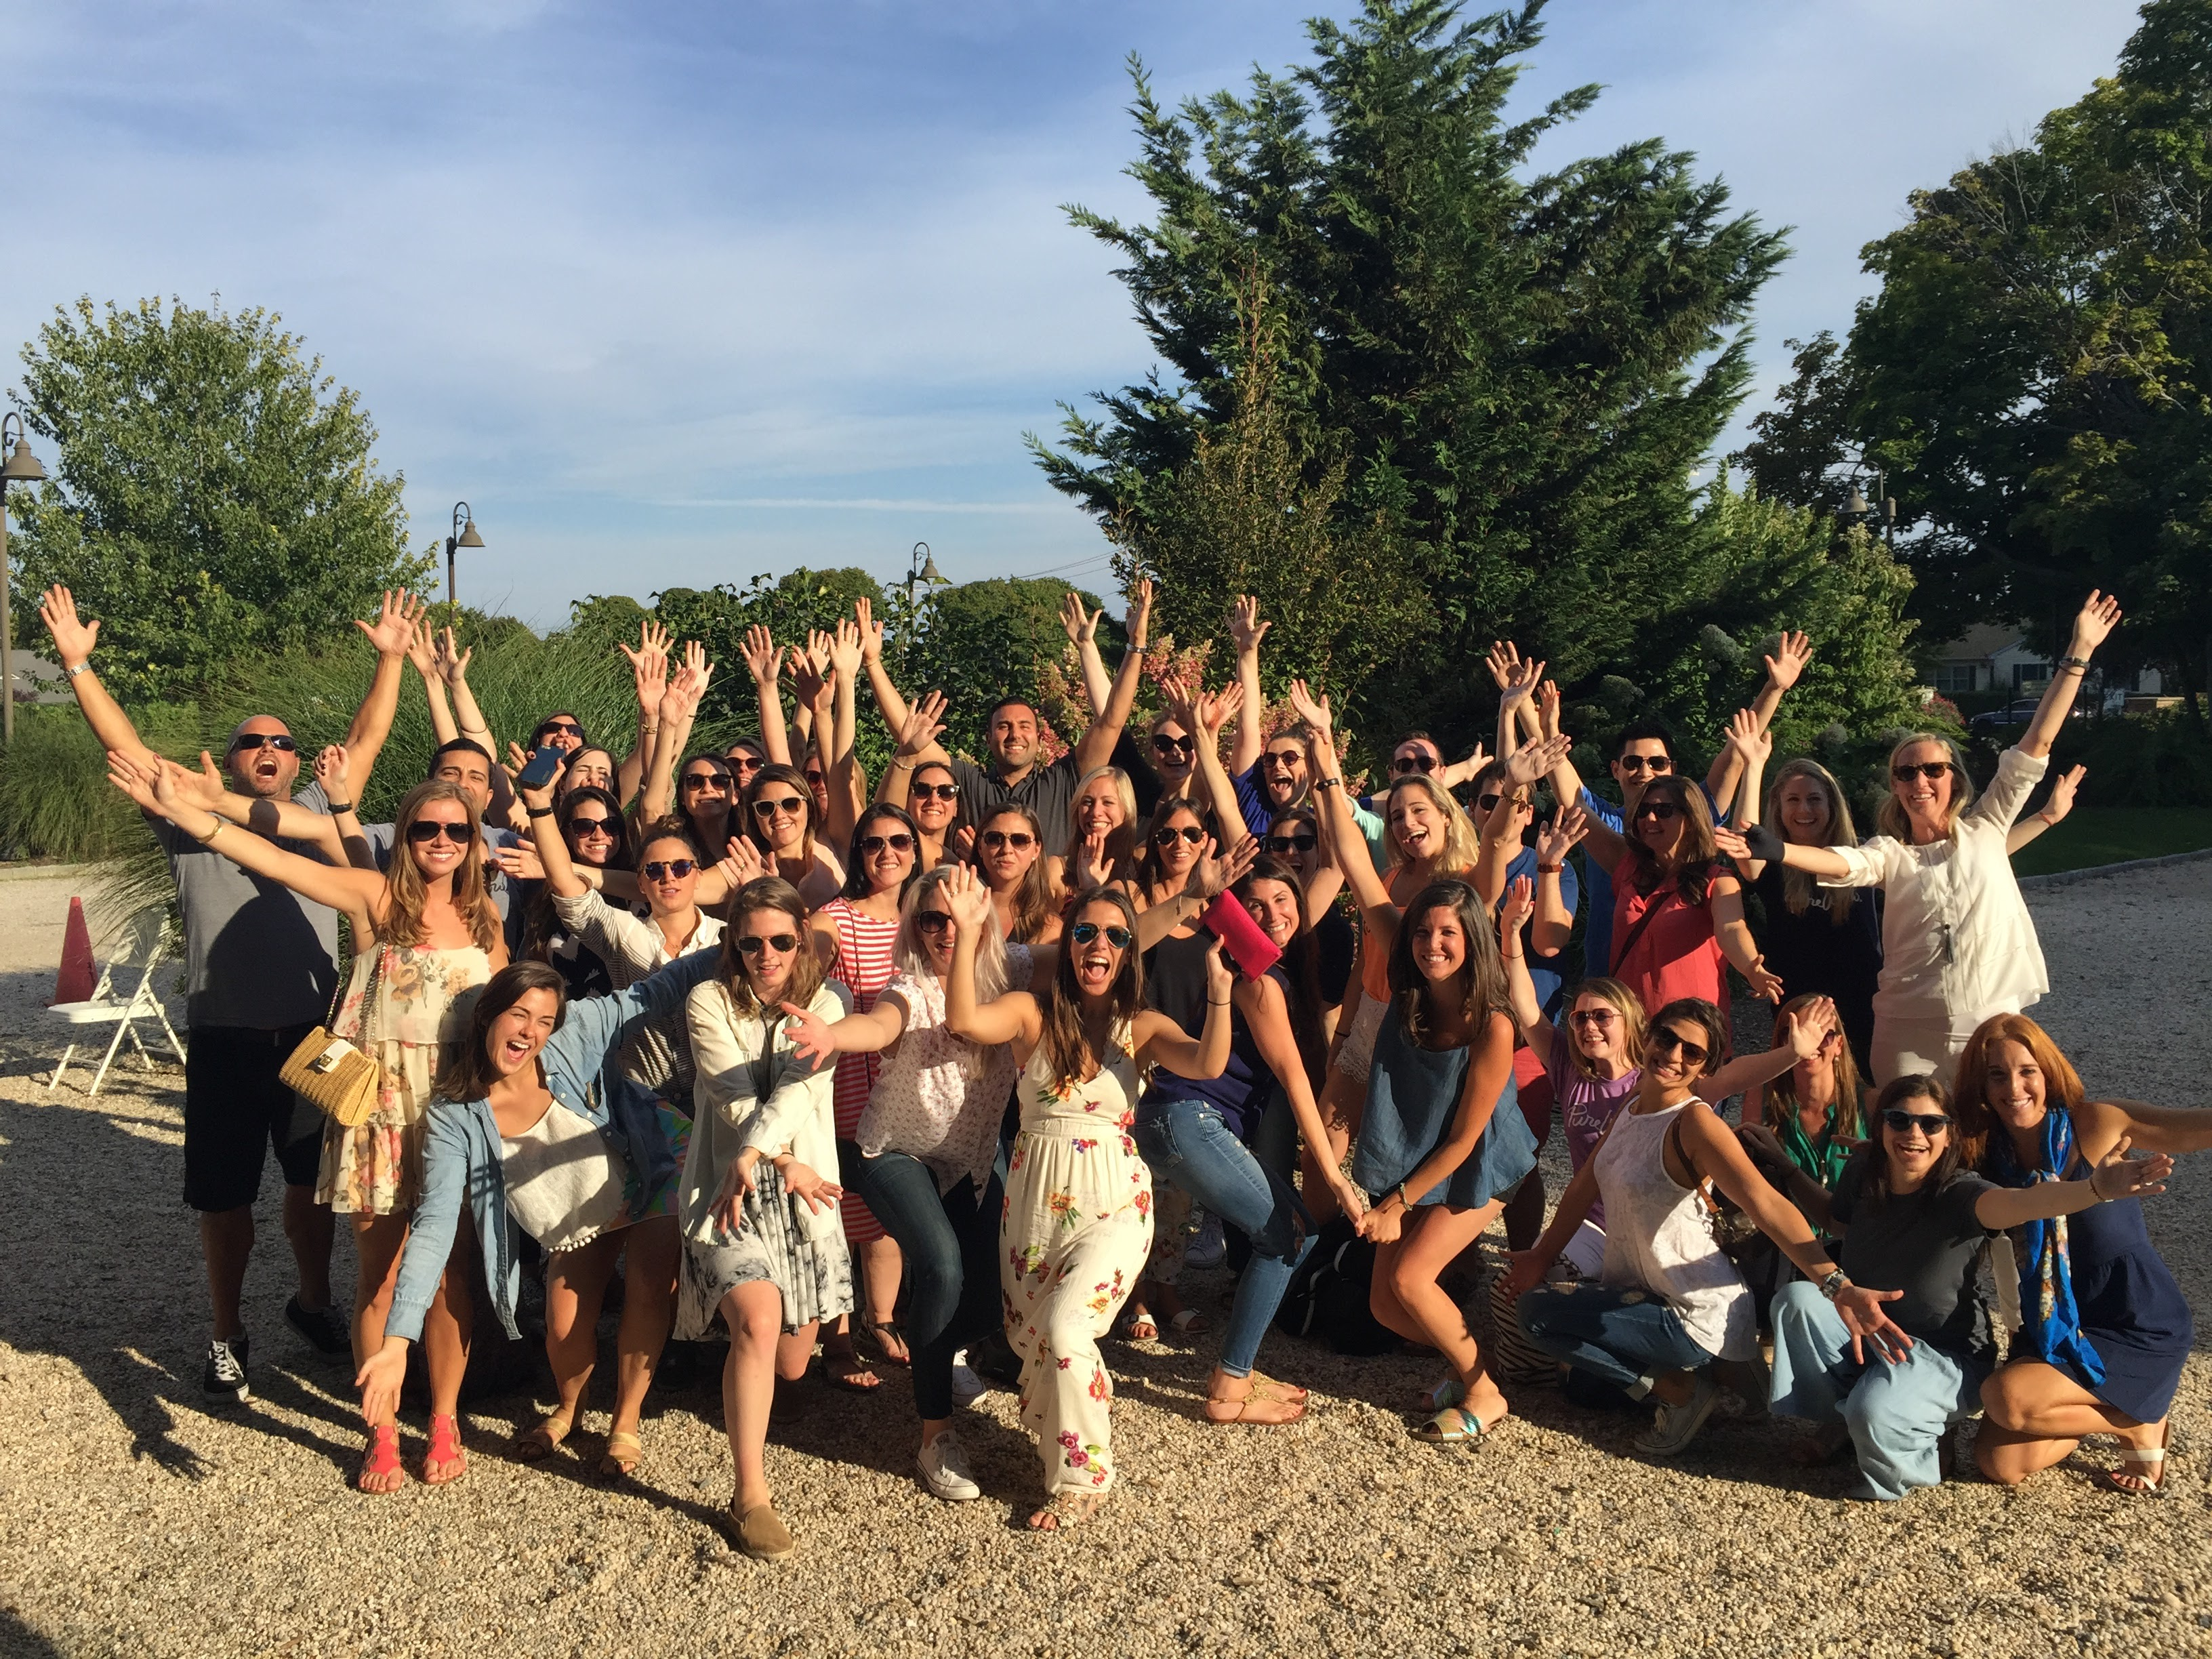 Winery_Summer_OffSite